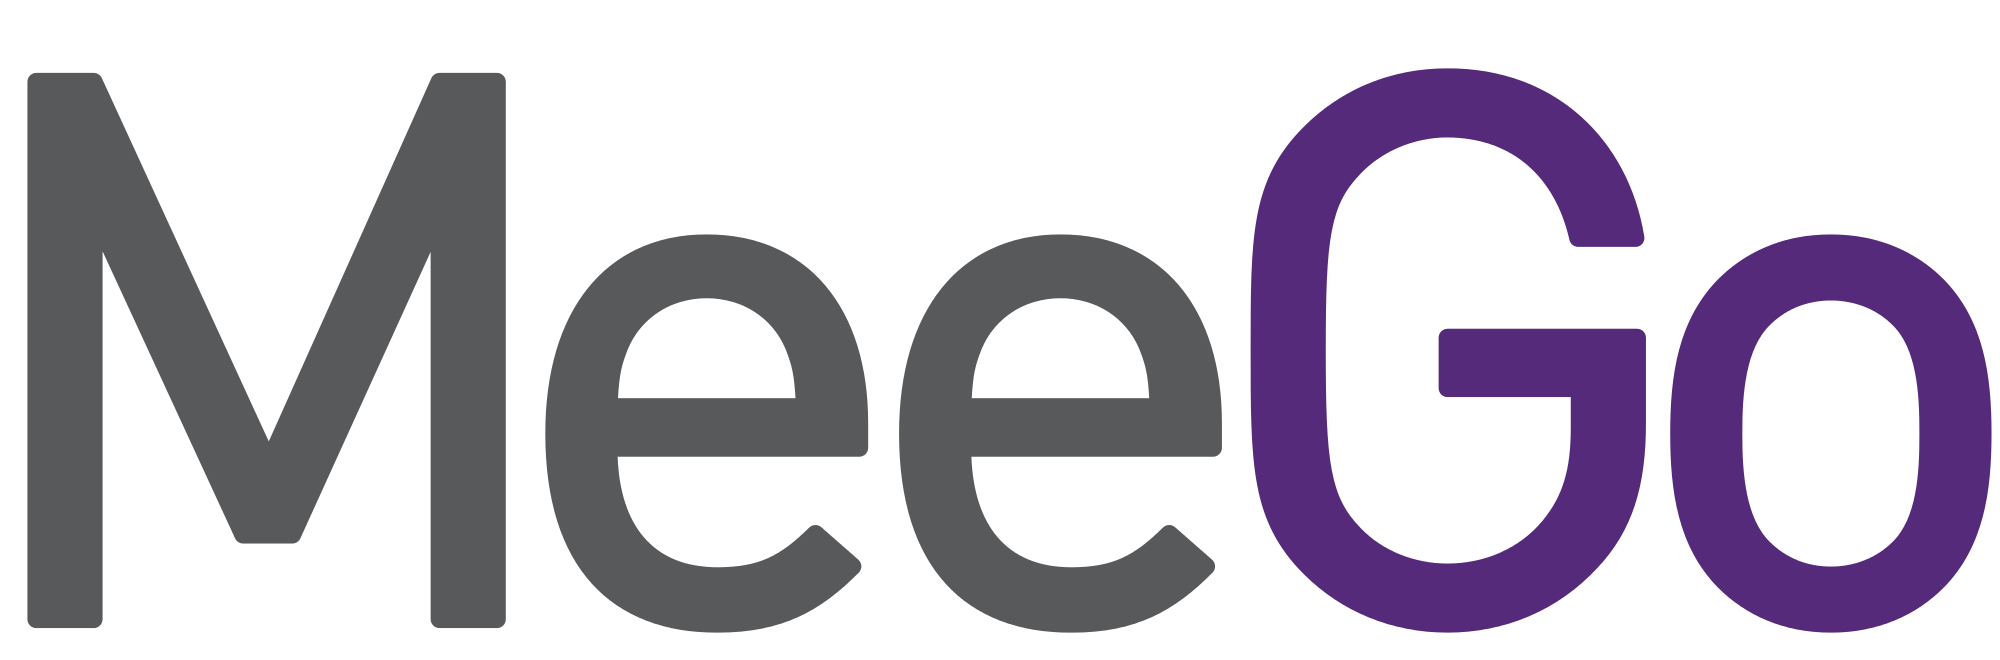 MeeGo Mobile Operating System Logo